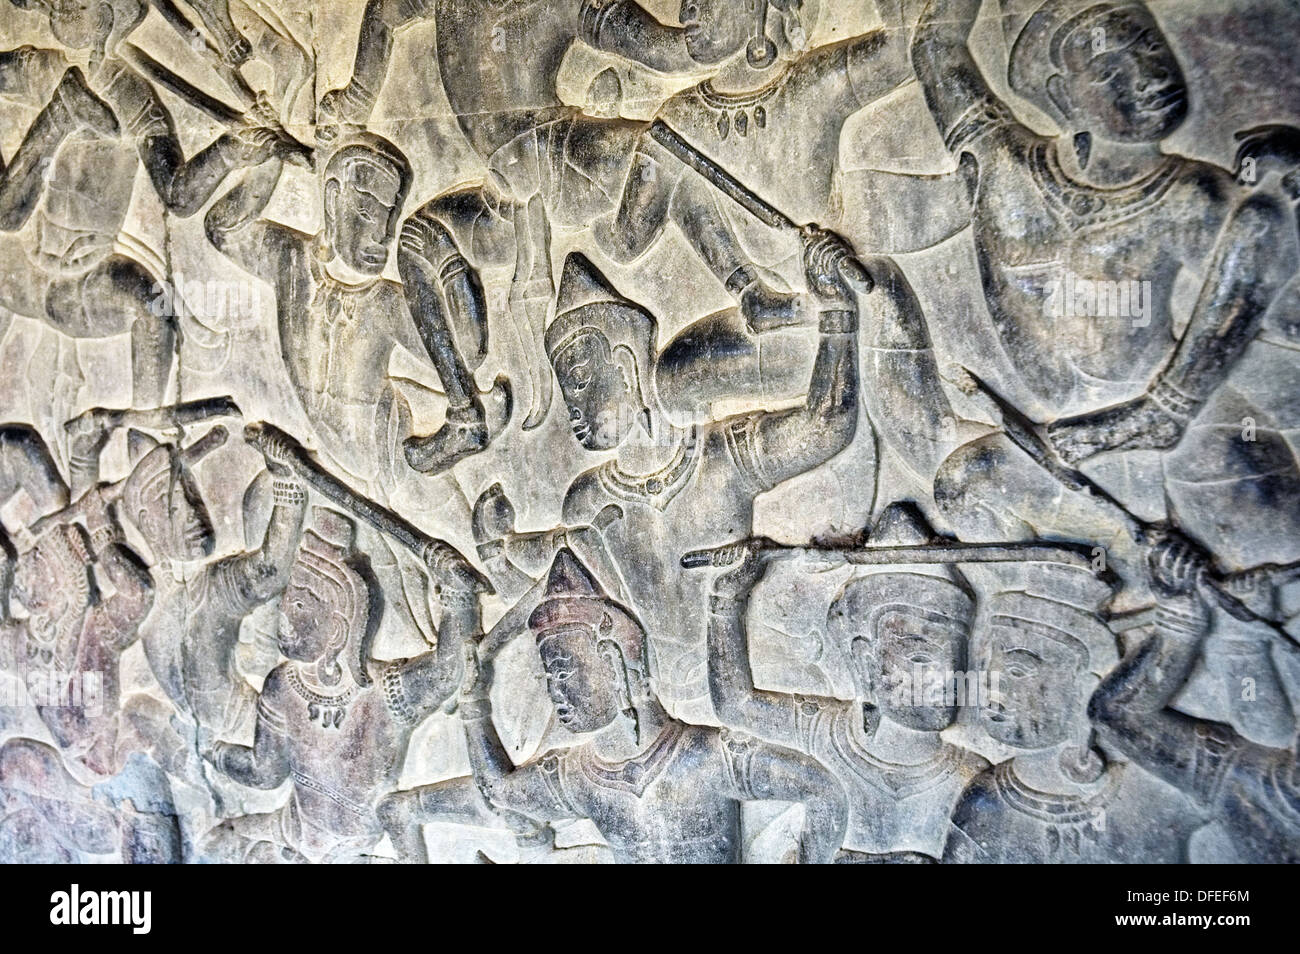 Bas-reliefs of Hindu myths. Angkor Wat. Siem Reap area. Kingdom of Cambodia. - Stock Image